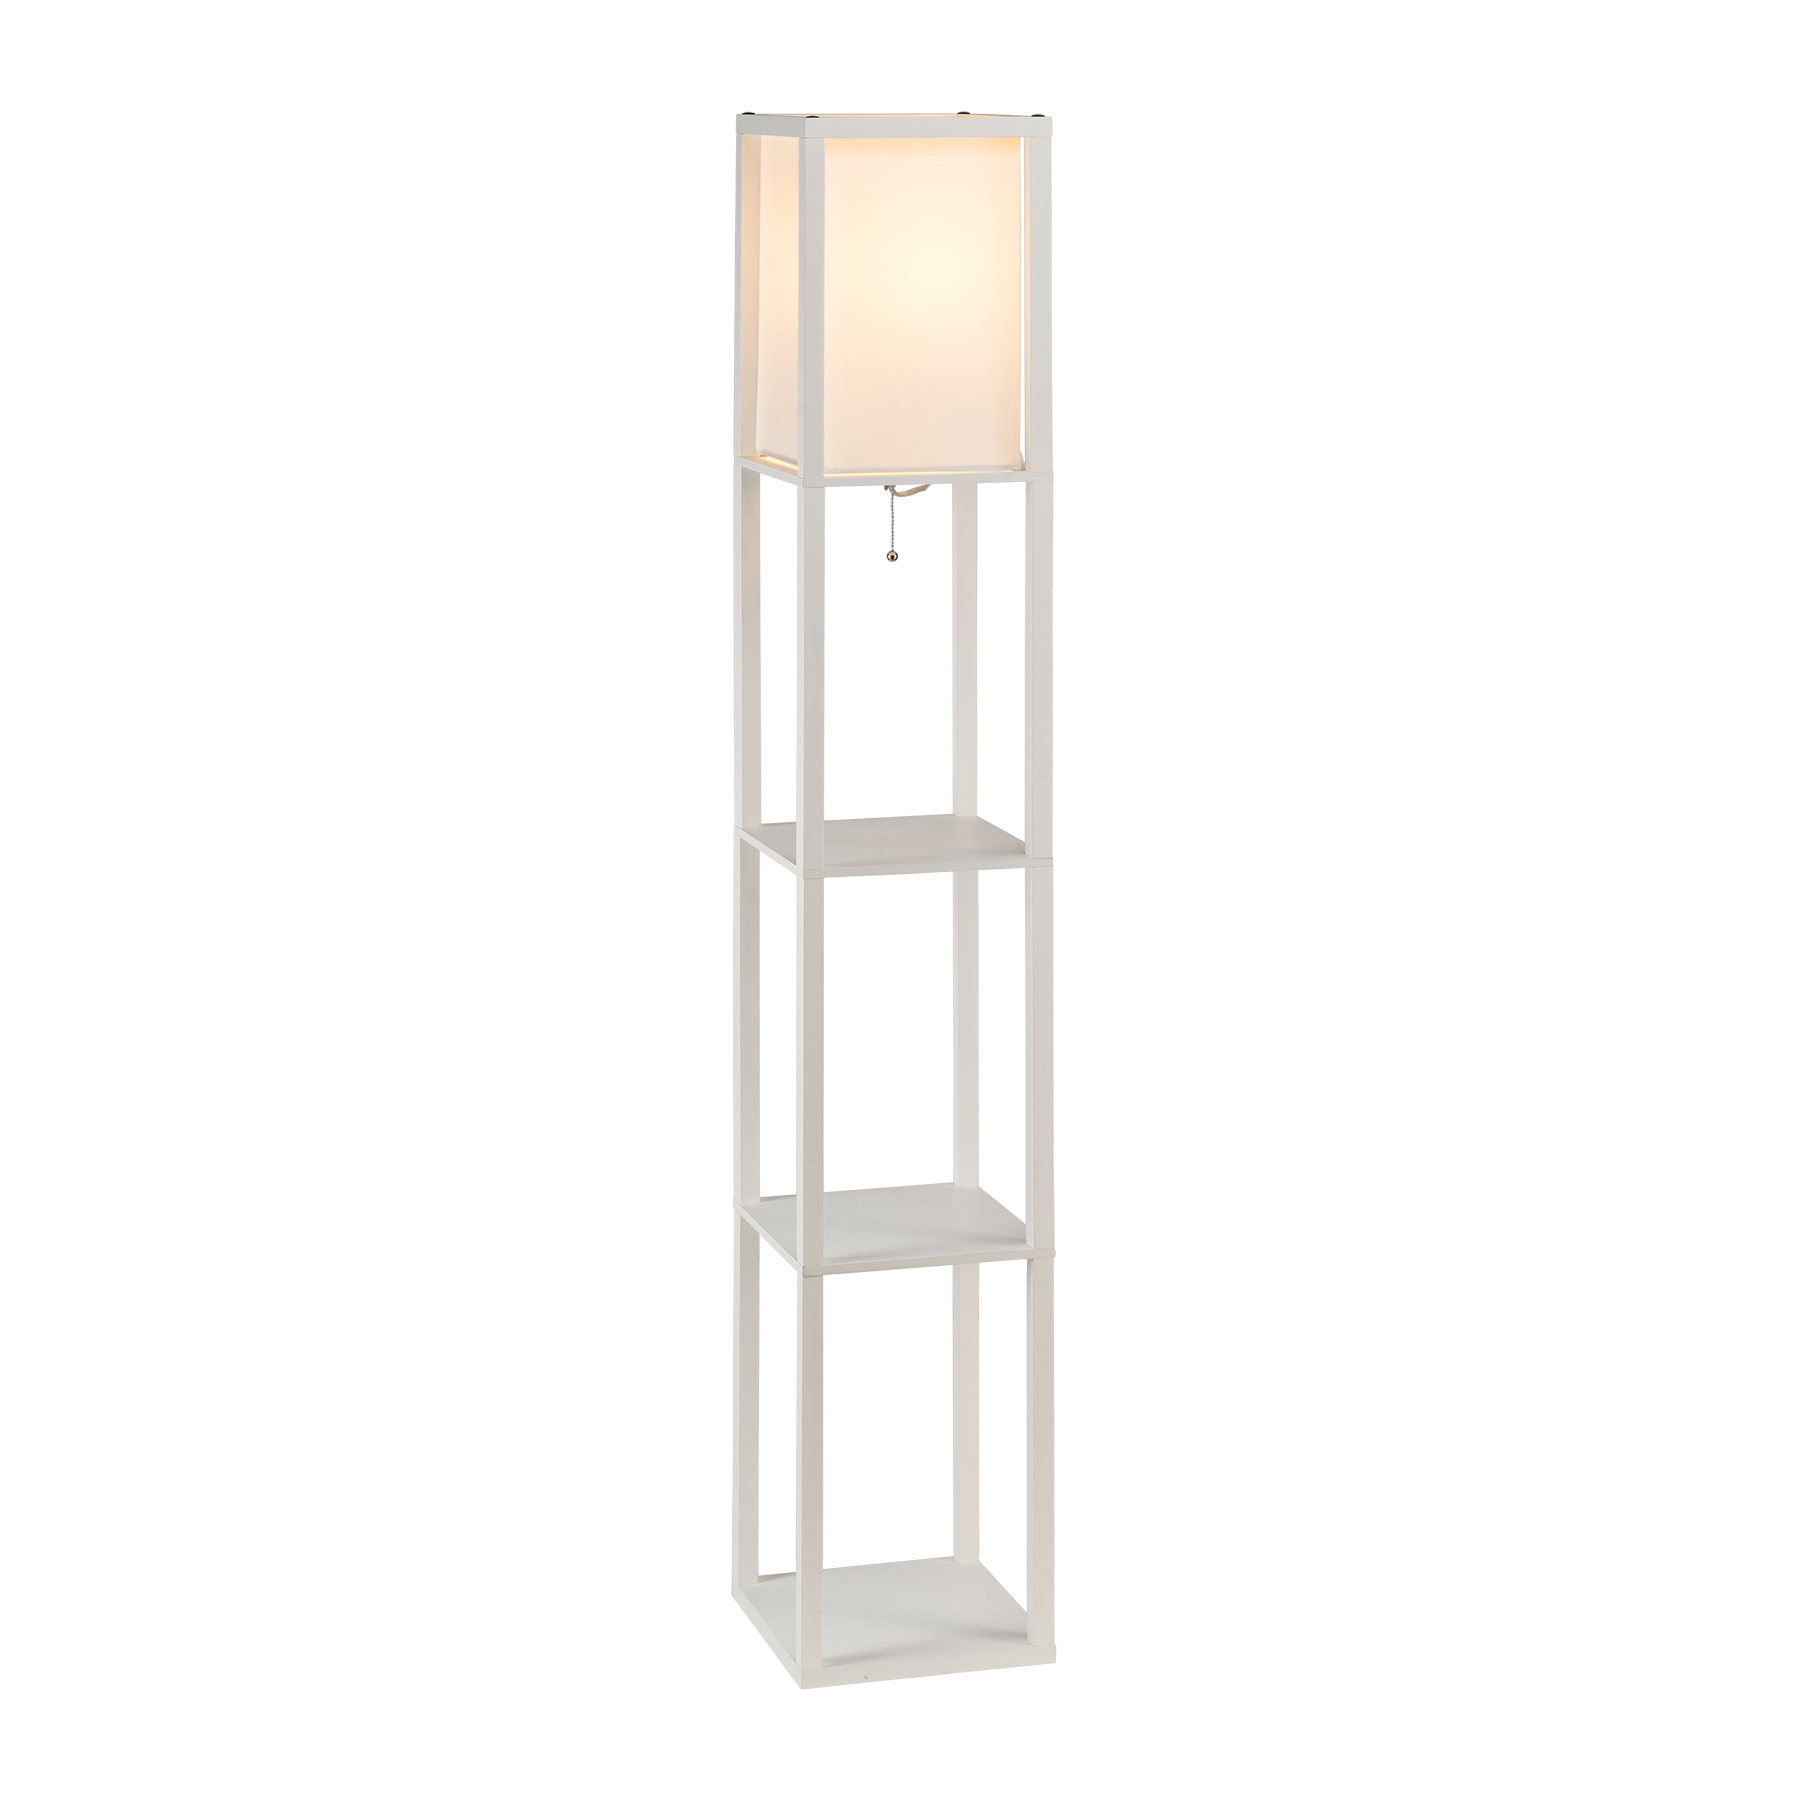 Accent Light Wooden Floor Lamp With Storage, Fabric Shade ...